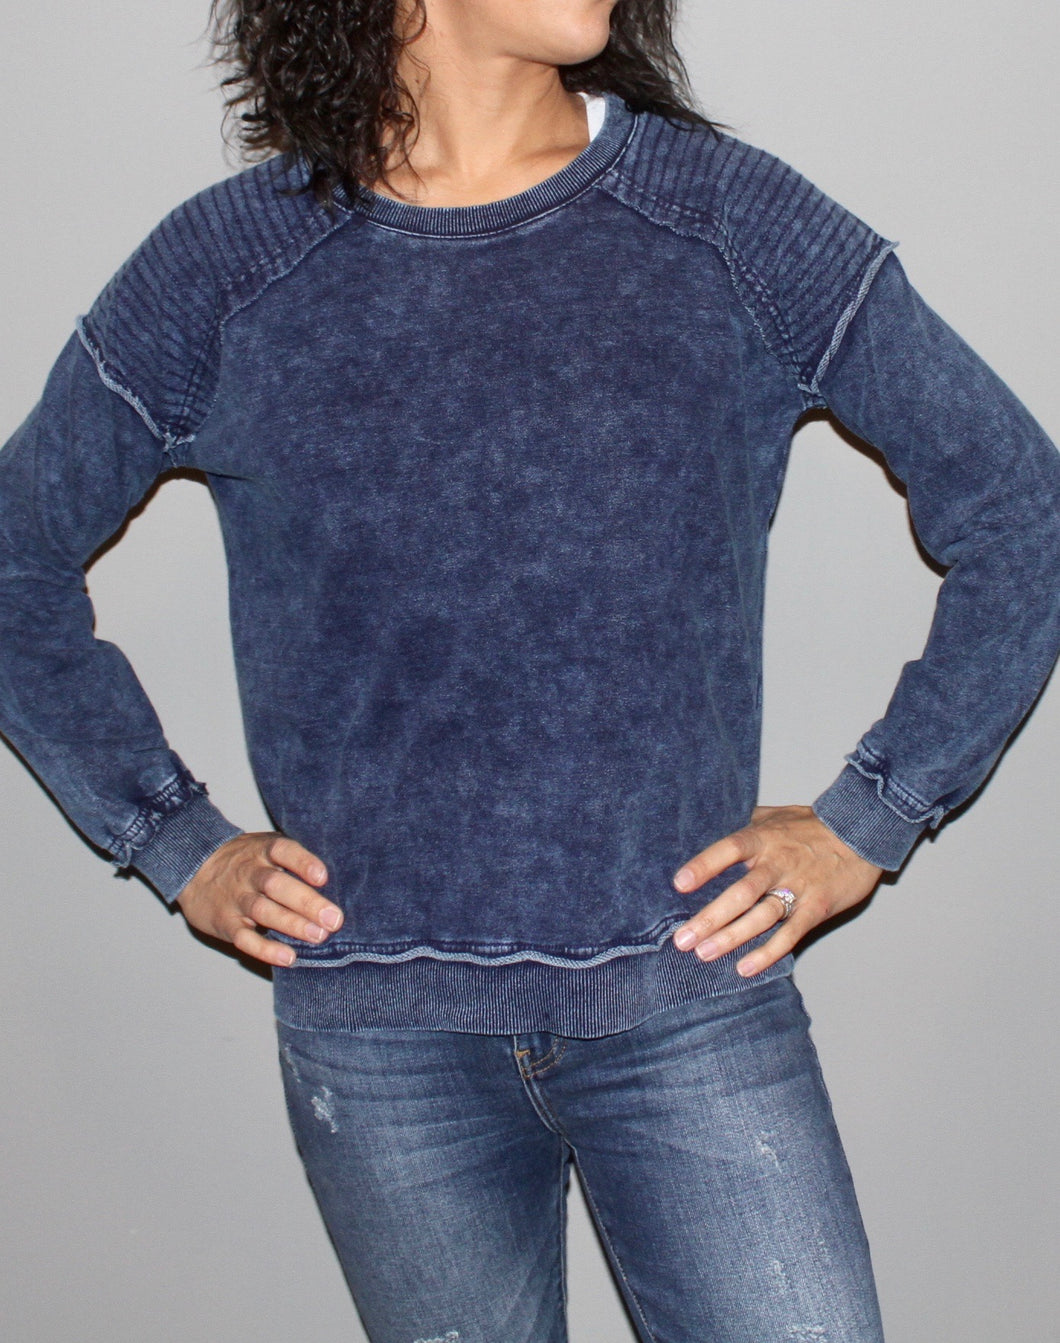 MINERAL WASHED RAW-EDGE FRENCH TERRY SWEATSHIRT